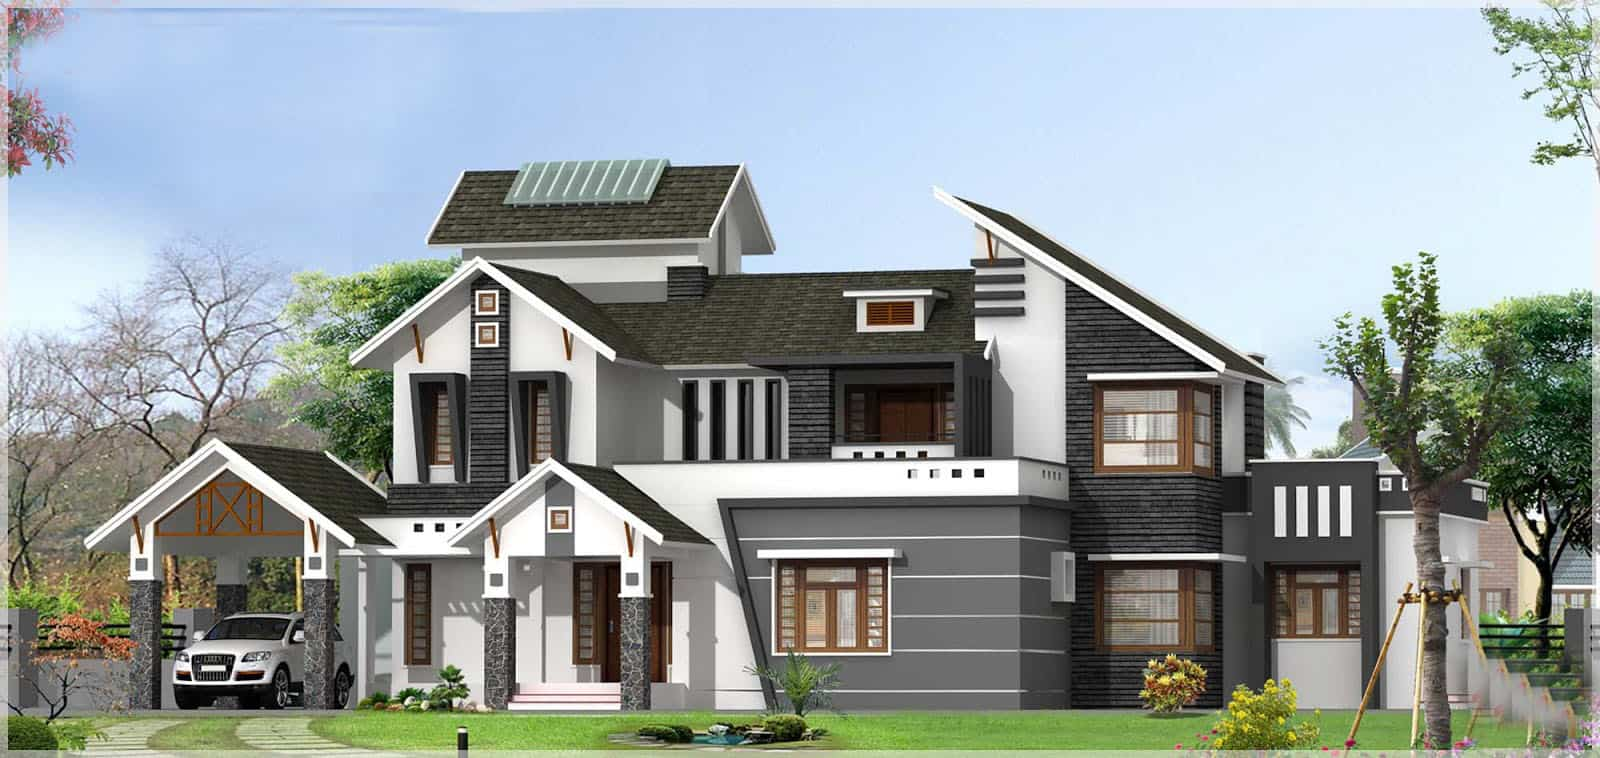 Sloping roof kerala house design at 3136 with pergolas New model contemporary house